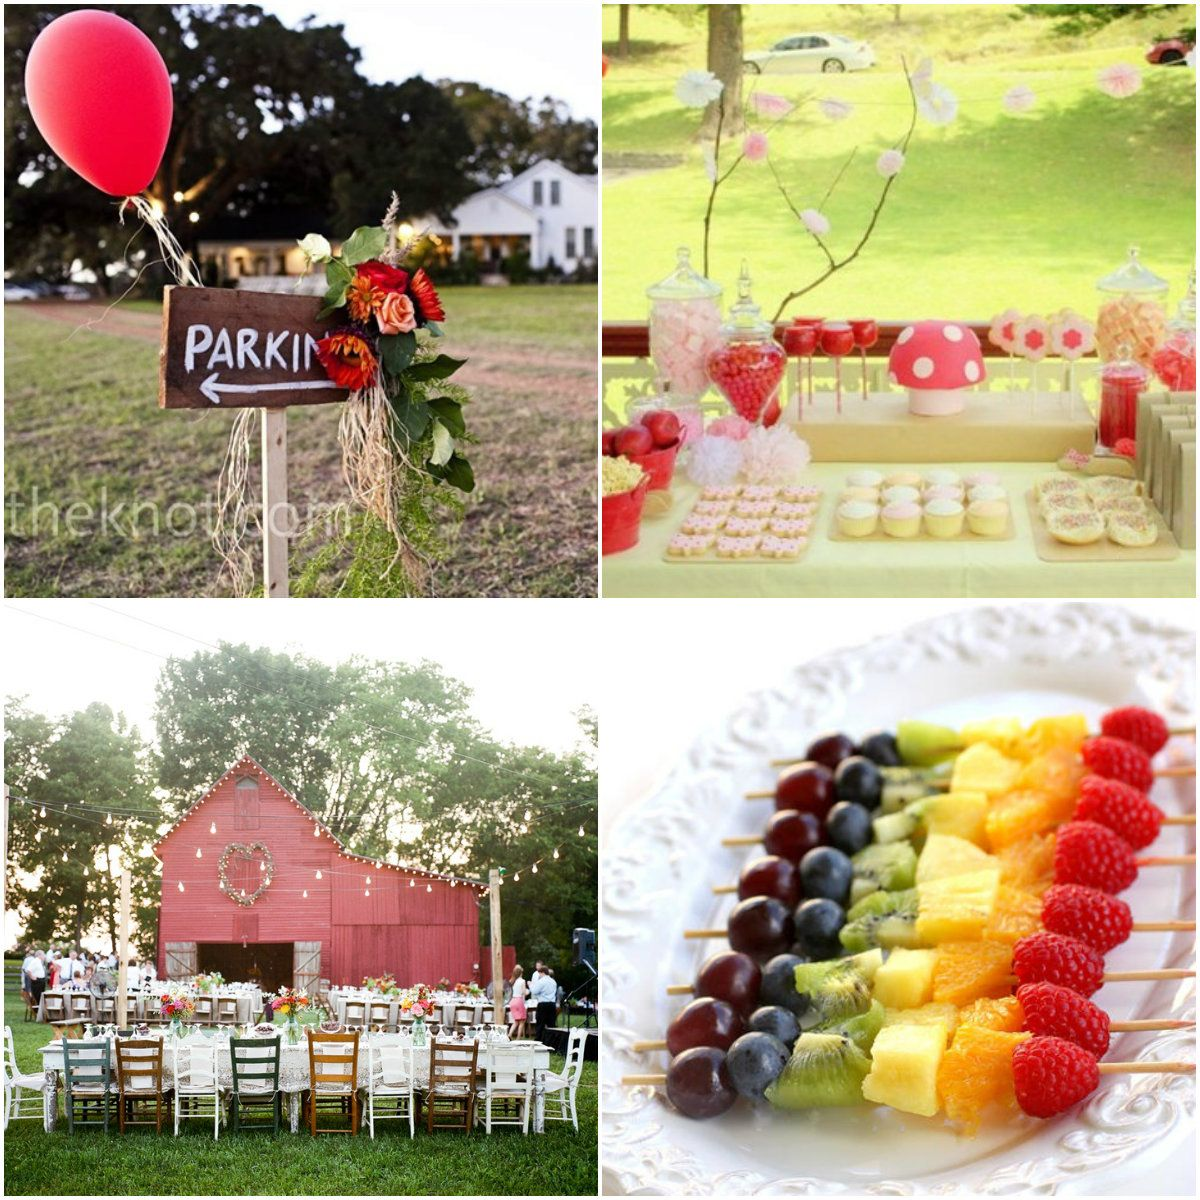 18th birthday garden party decorations Party Ideas Pinterest